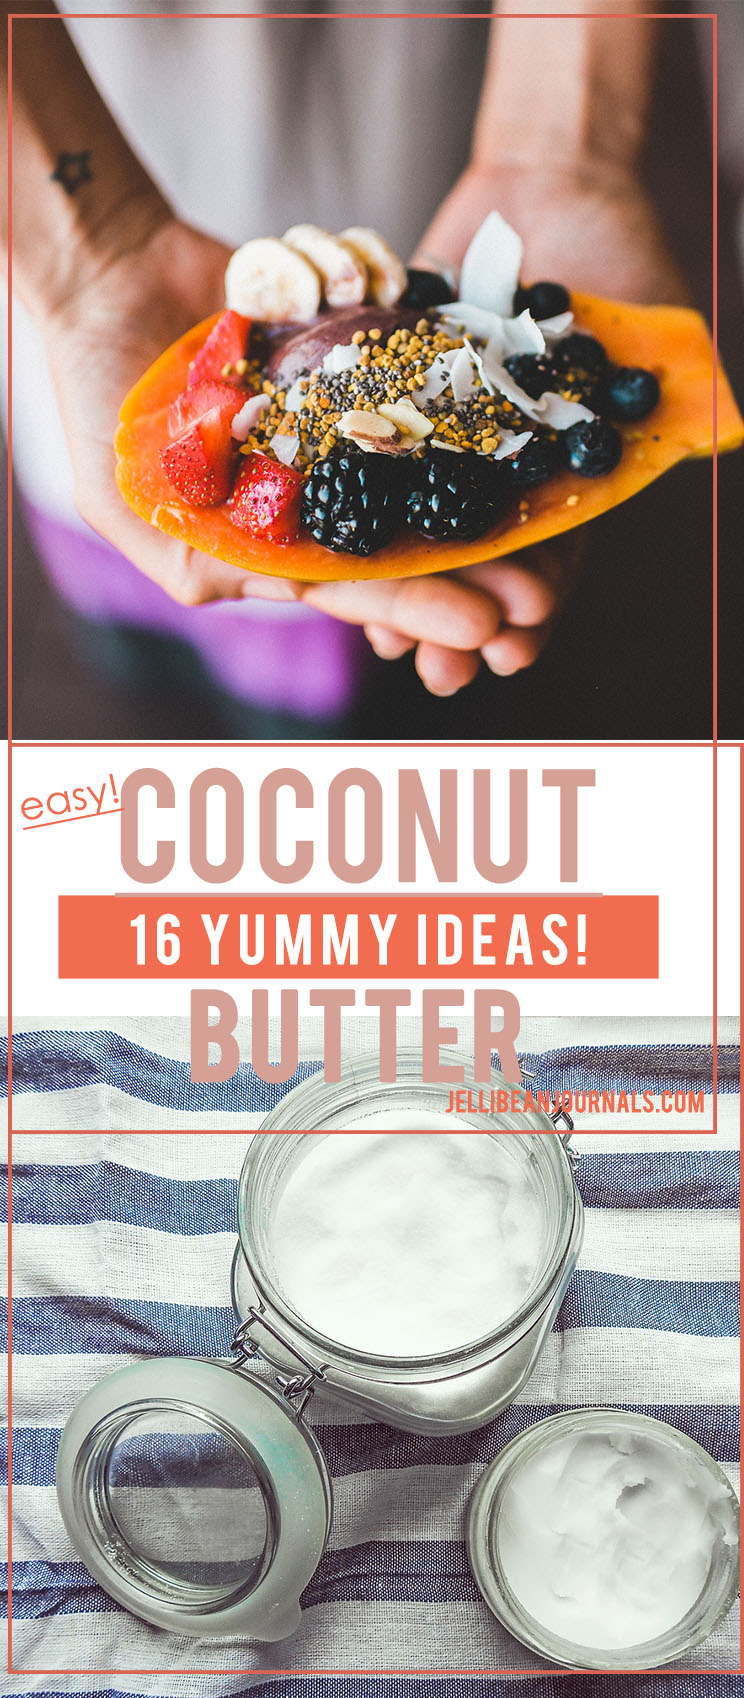 Tasty everyday ways to eat coconut butter | Jellibeanjournals.com